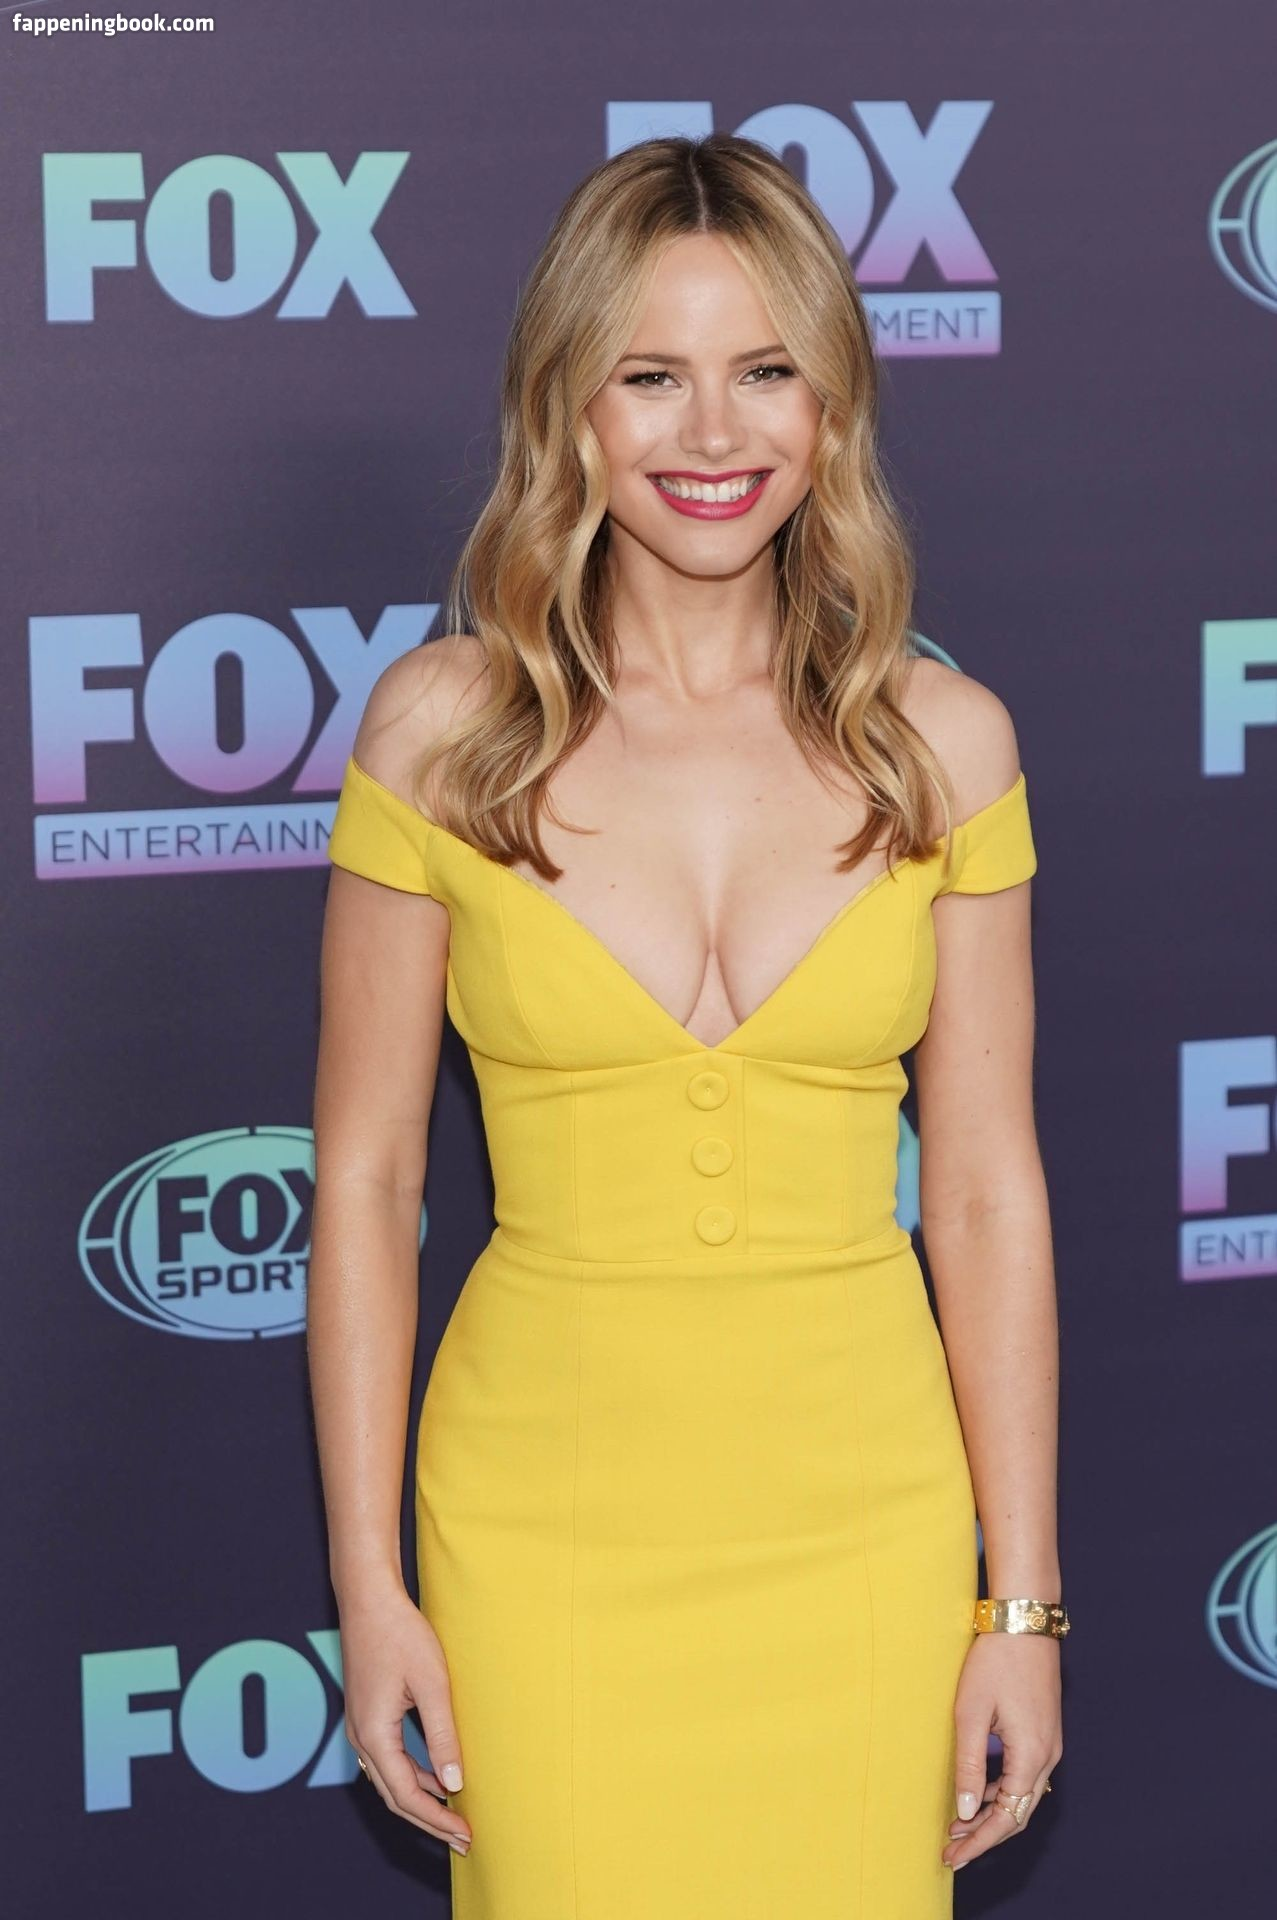 Halston Sage Nude, Sexy, The Fappening, Uncensored - Photo